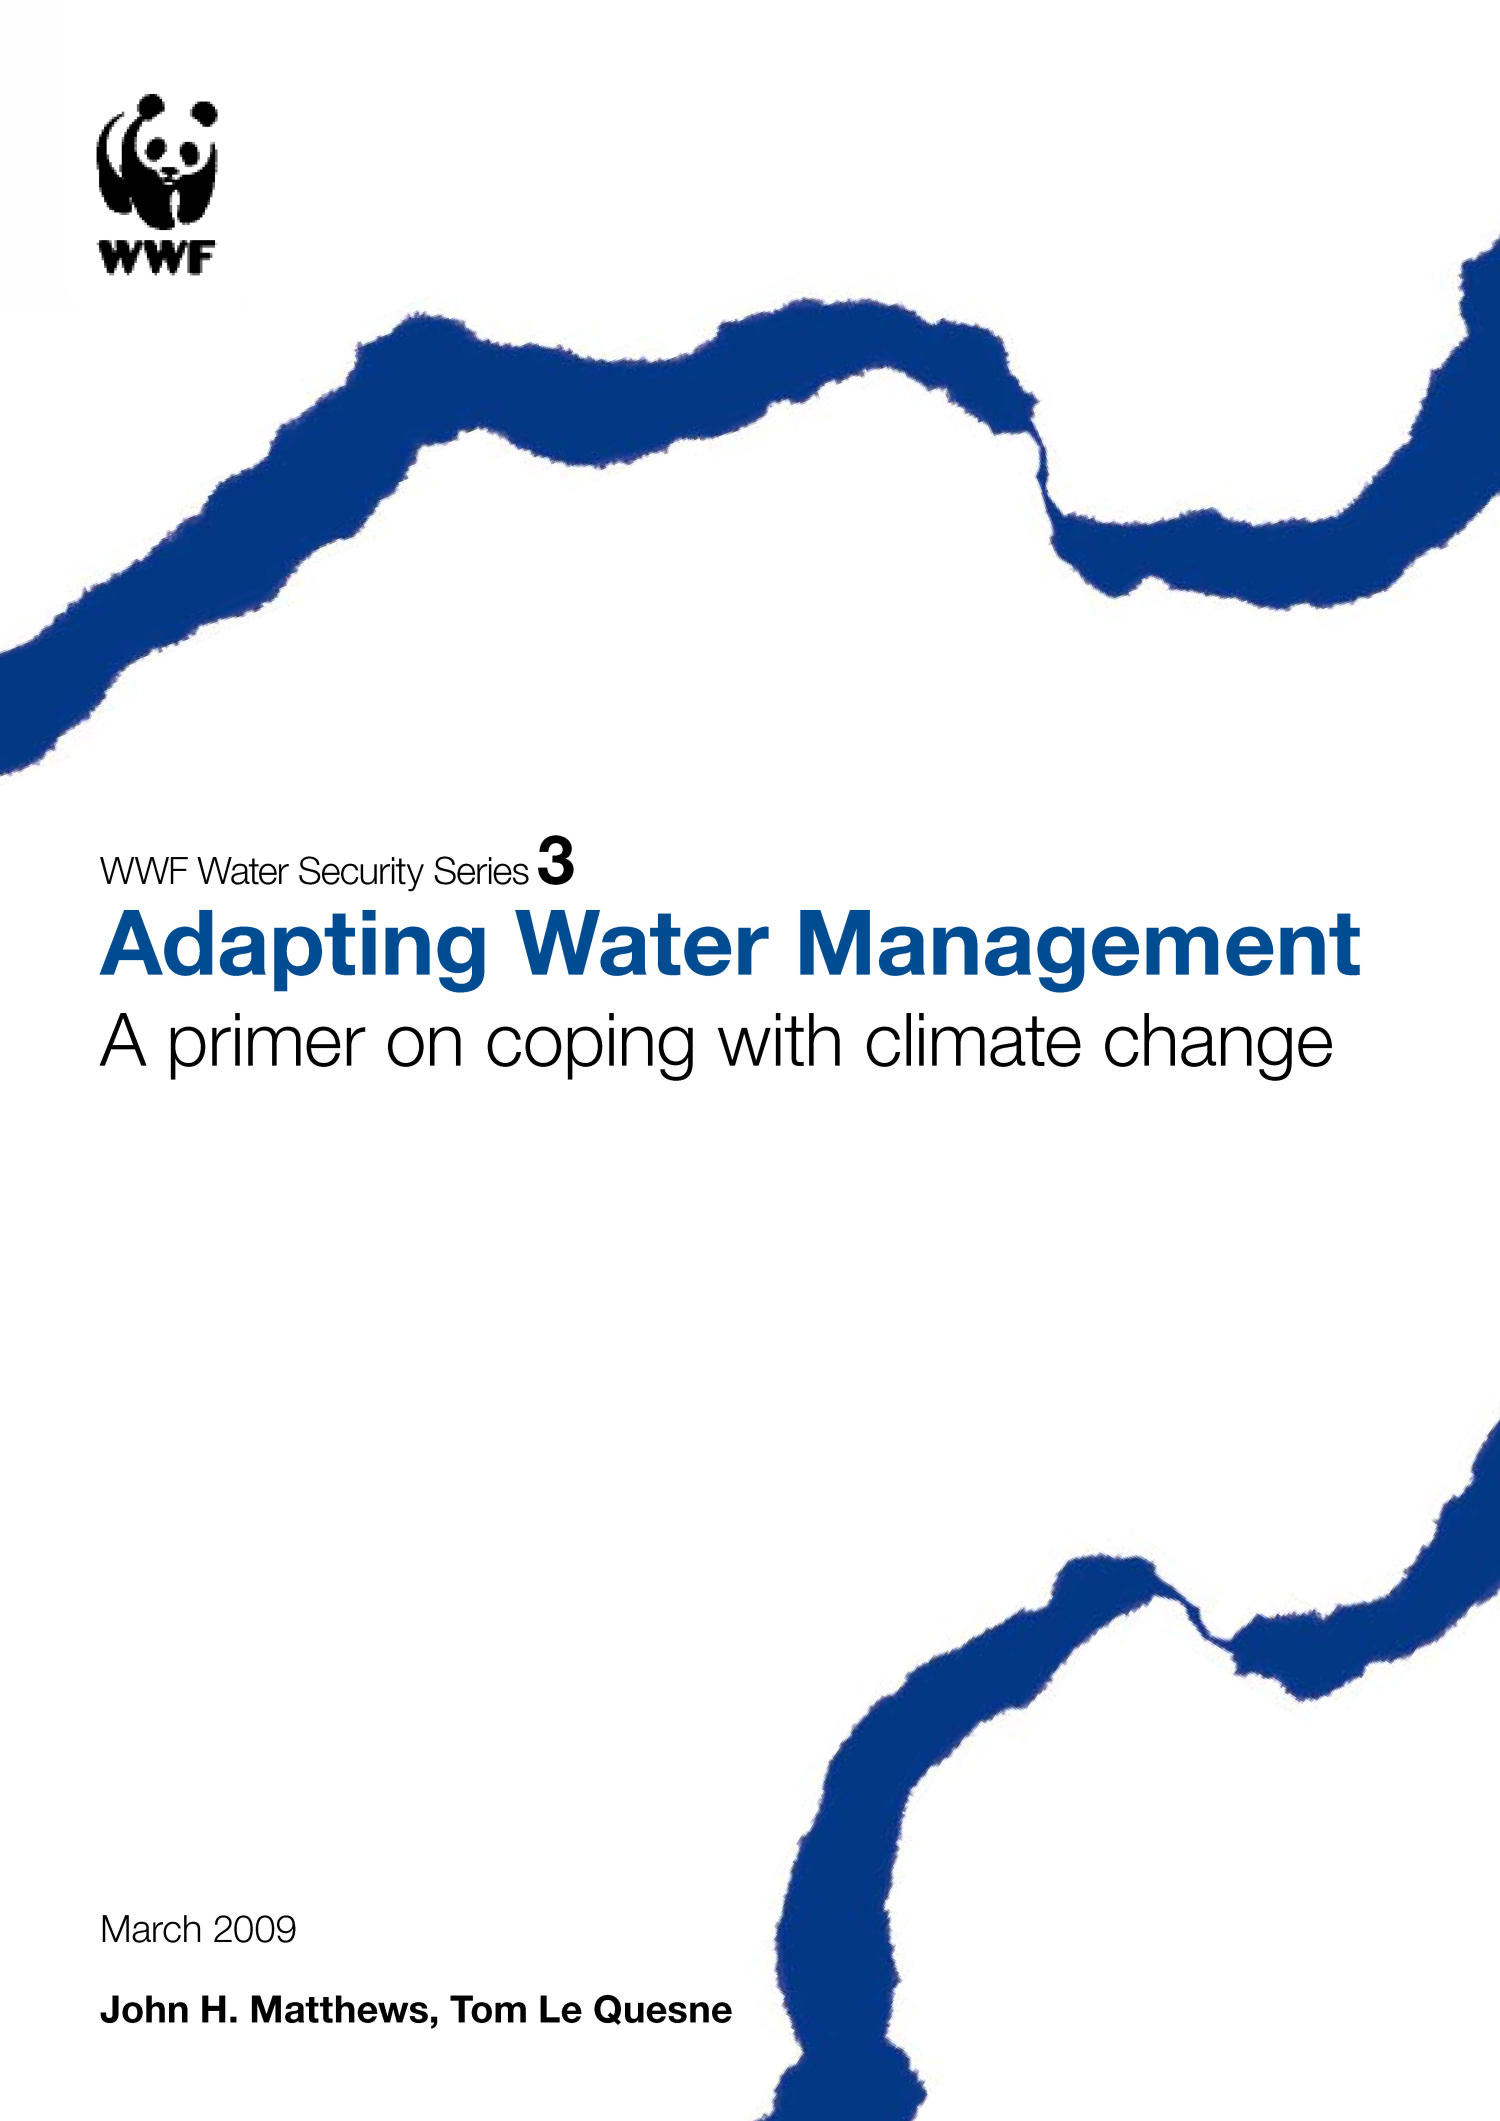 Adapting Water Management A Primer on Coping with Climate Change                                                                                                      Front Cover